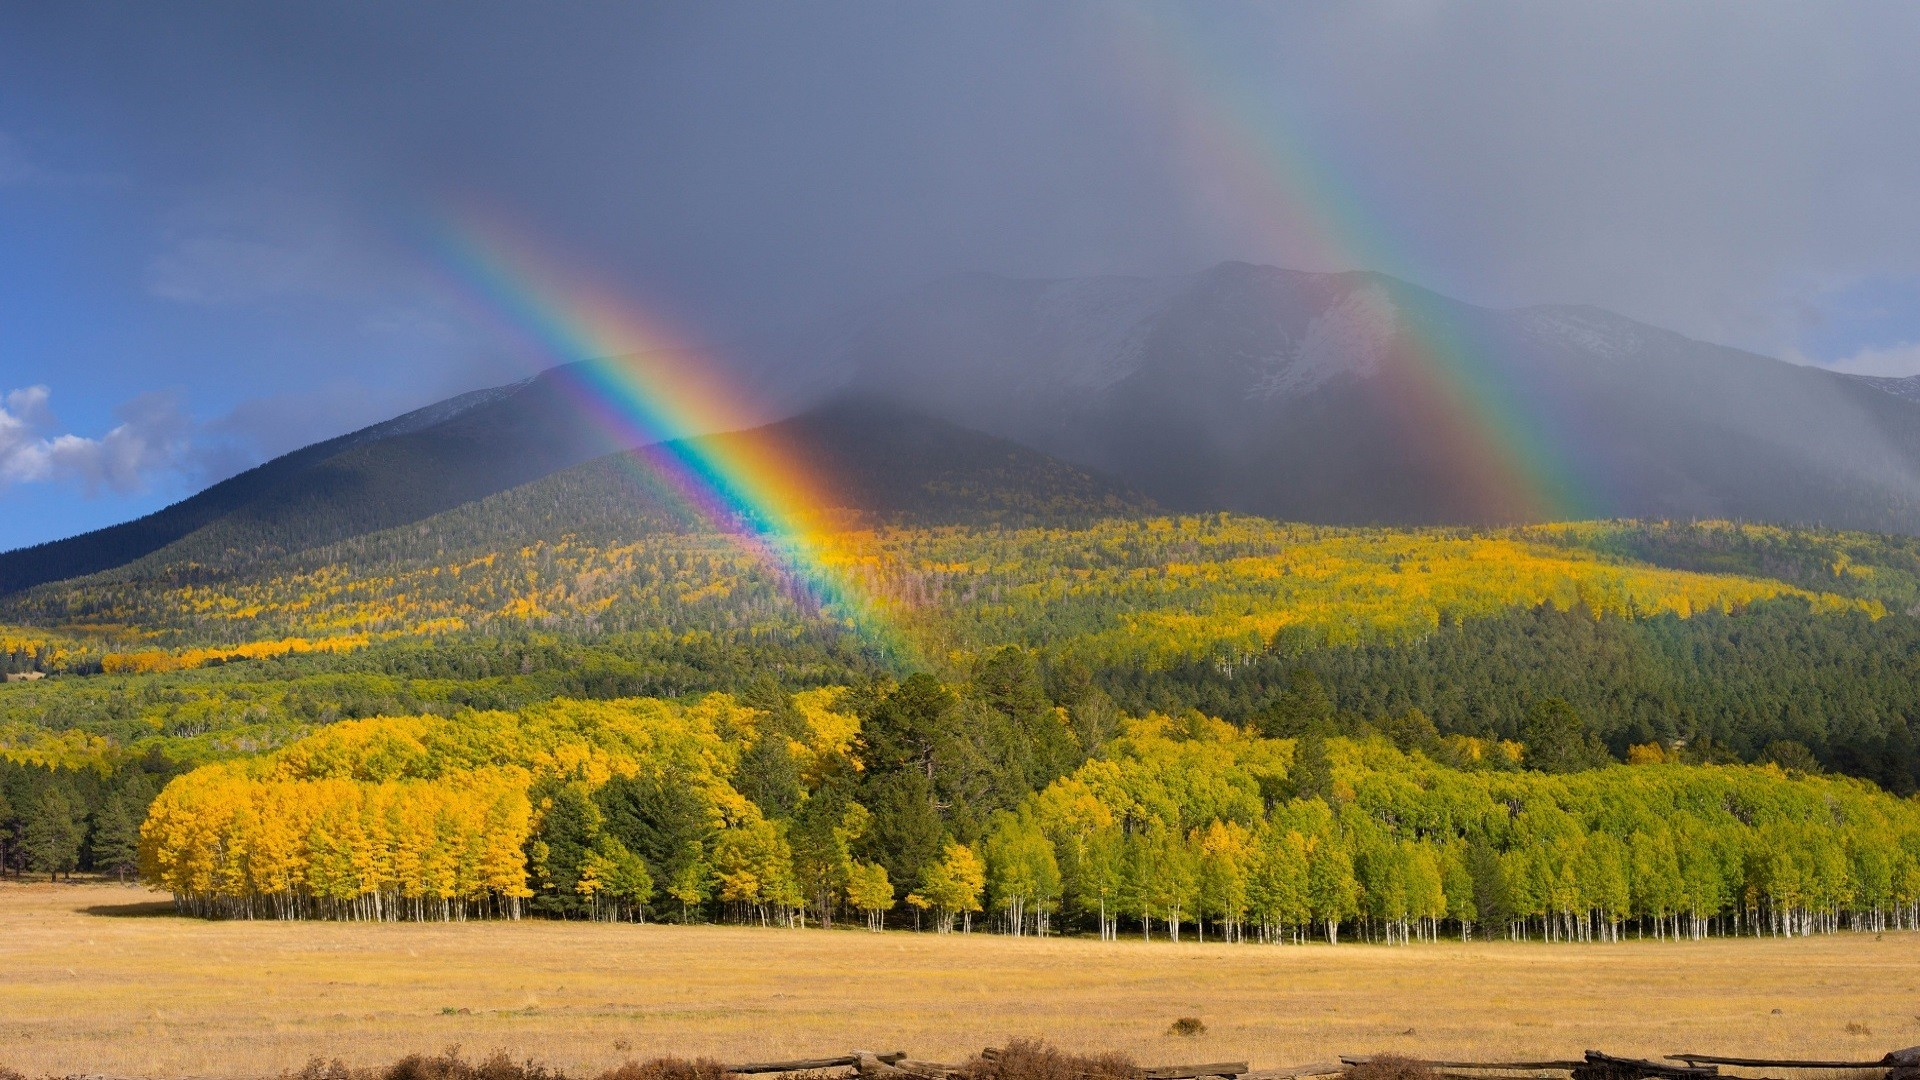 Res: 1920x1080, two rainbow wallpaper mountain backgrounds rainbow background